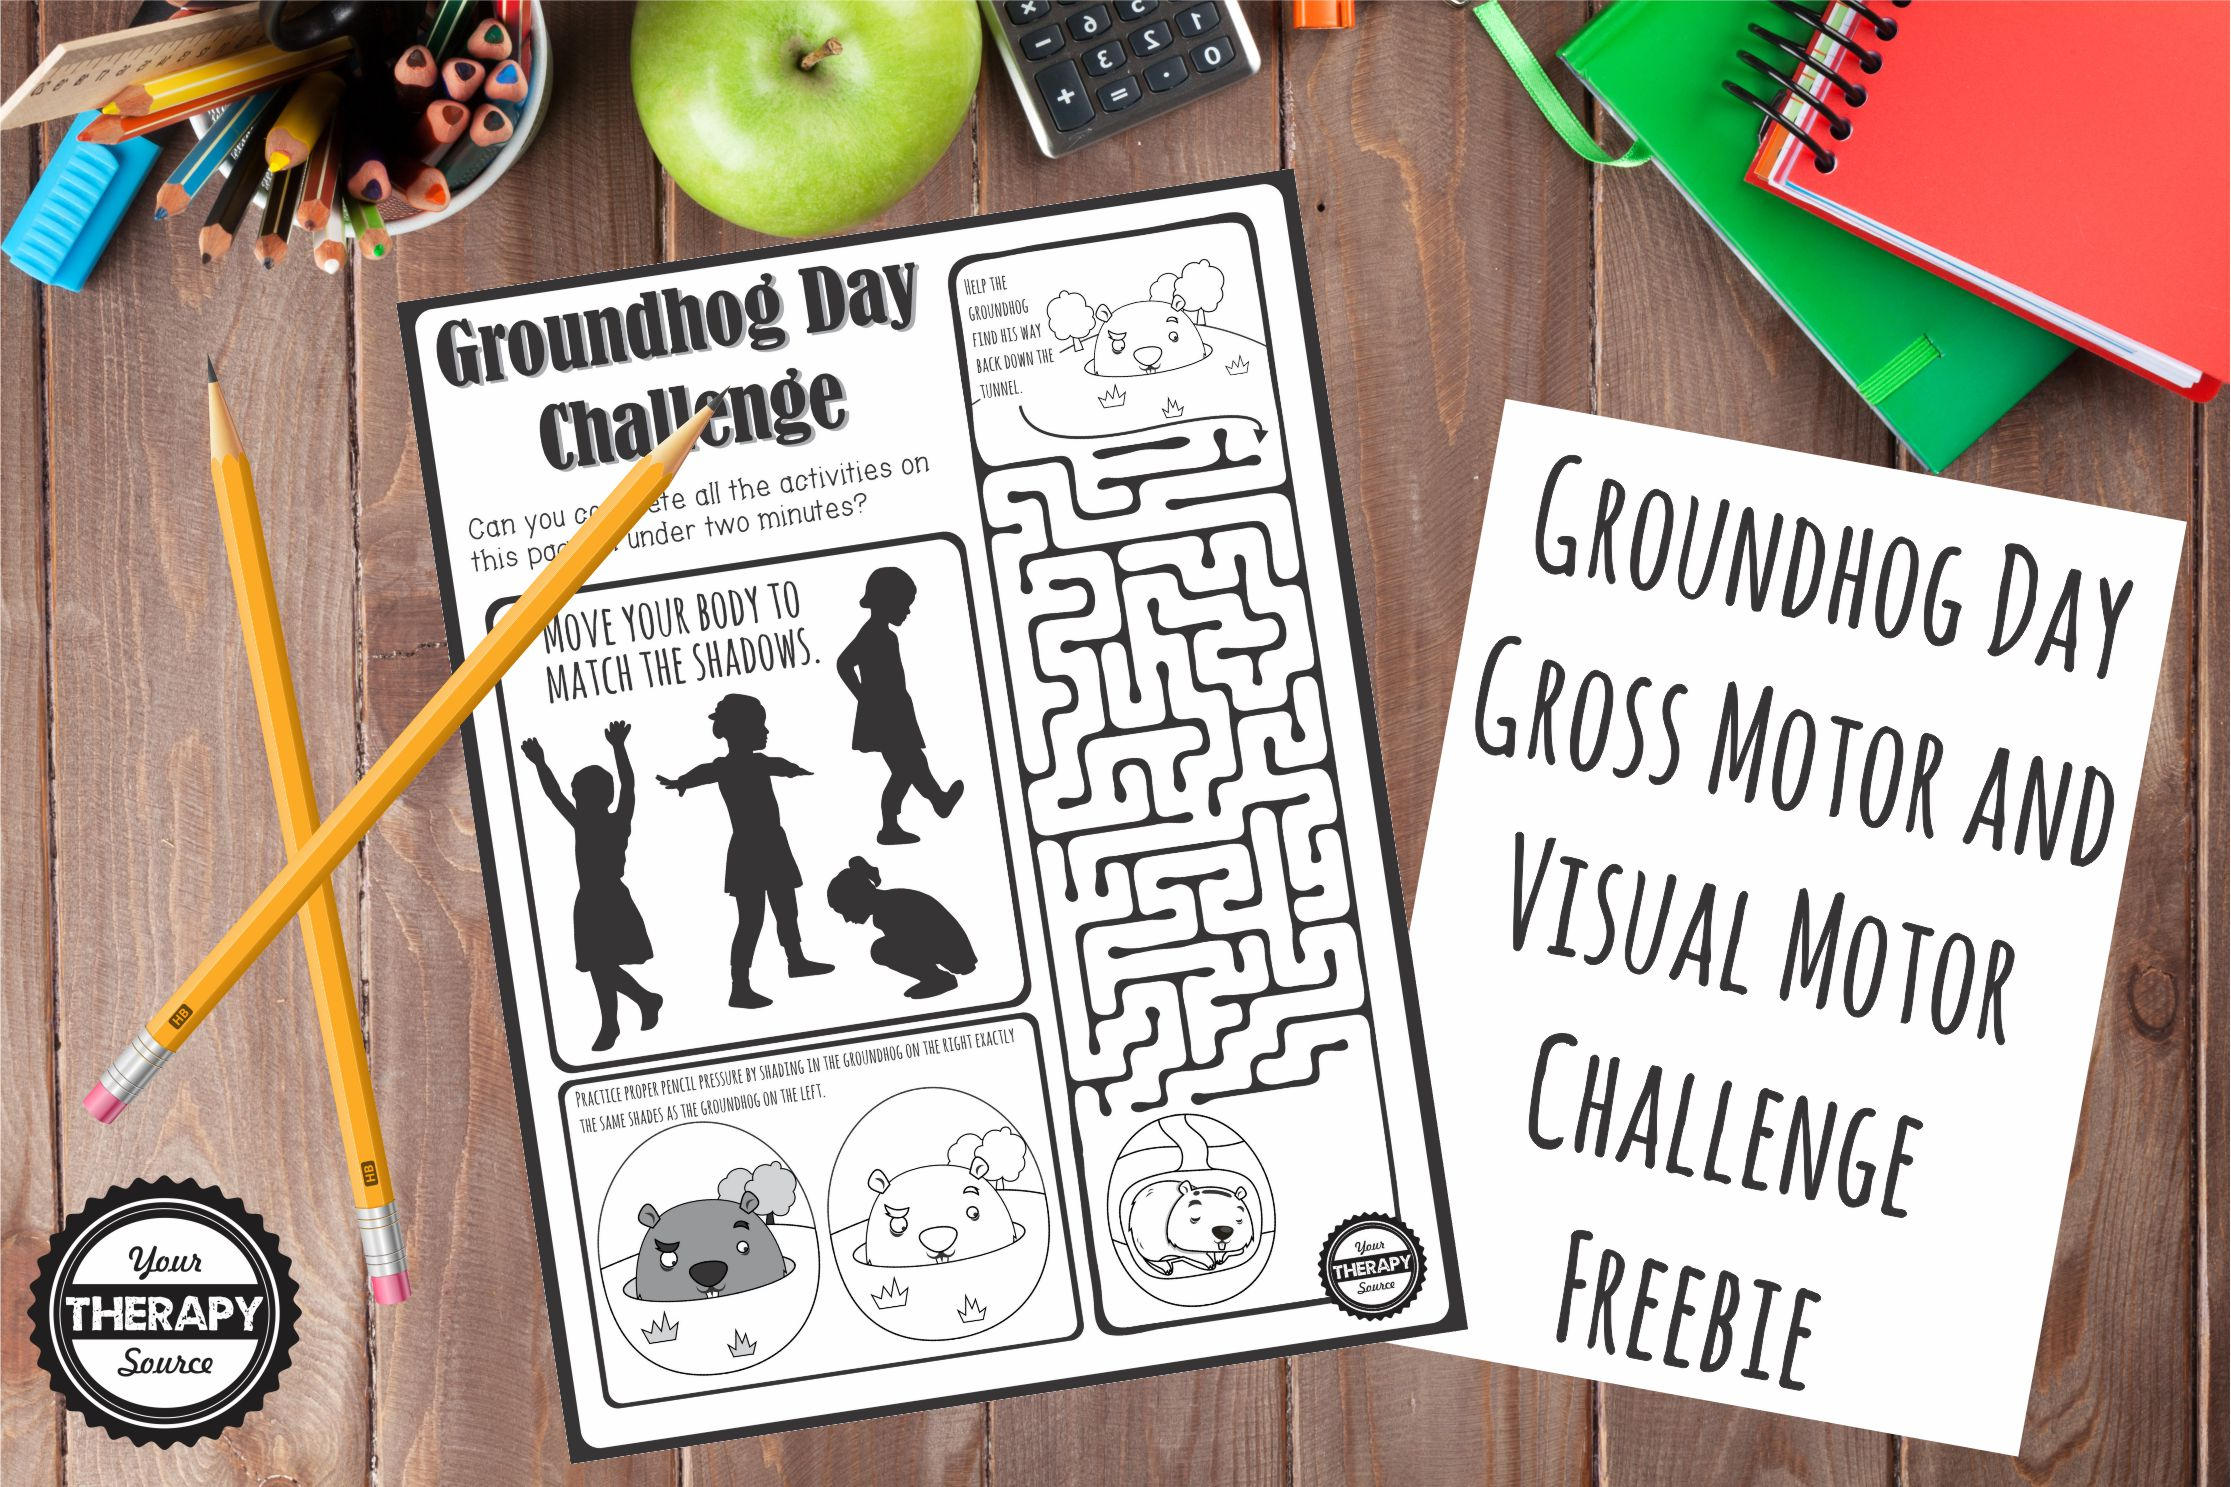 Apple physical therapy - Groundhog Day Visual Gross Motor Challenge